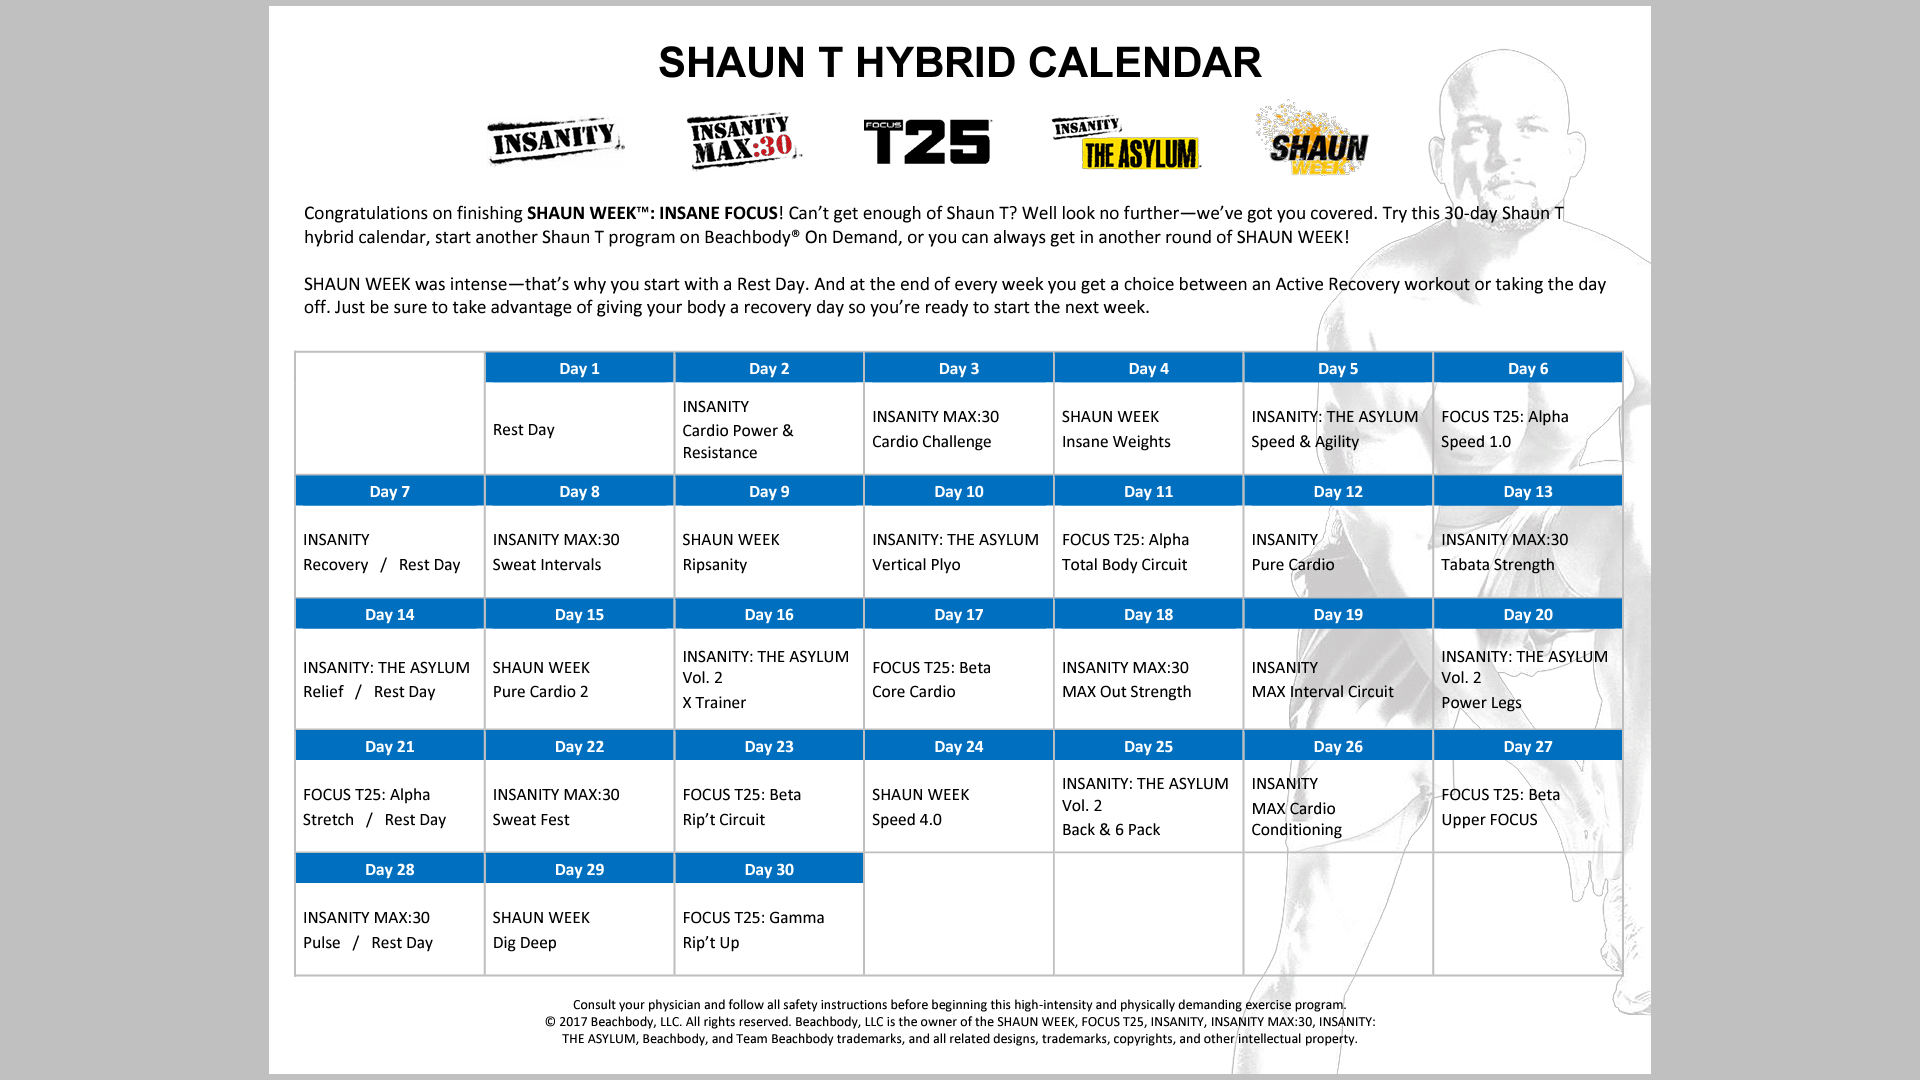 About To Finish Shaun Week. Going To Follow The Hybrid inside Max 30 Calendar